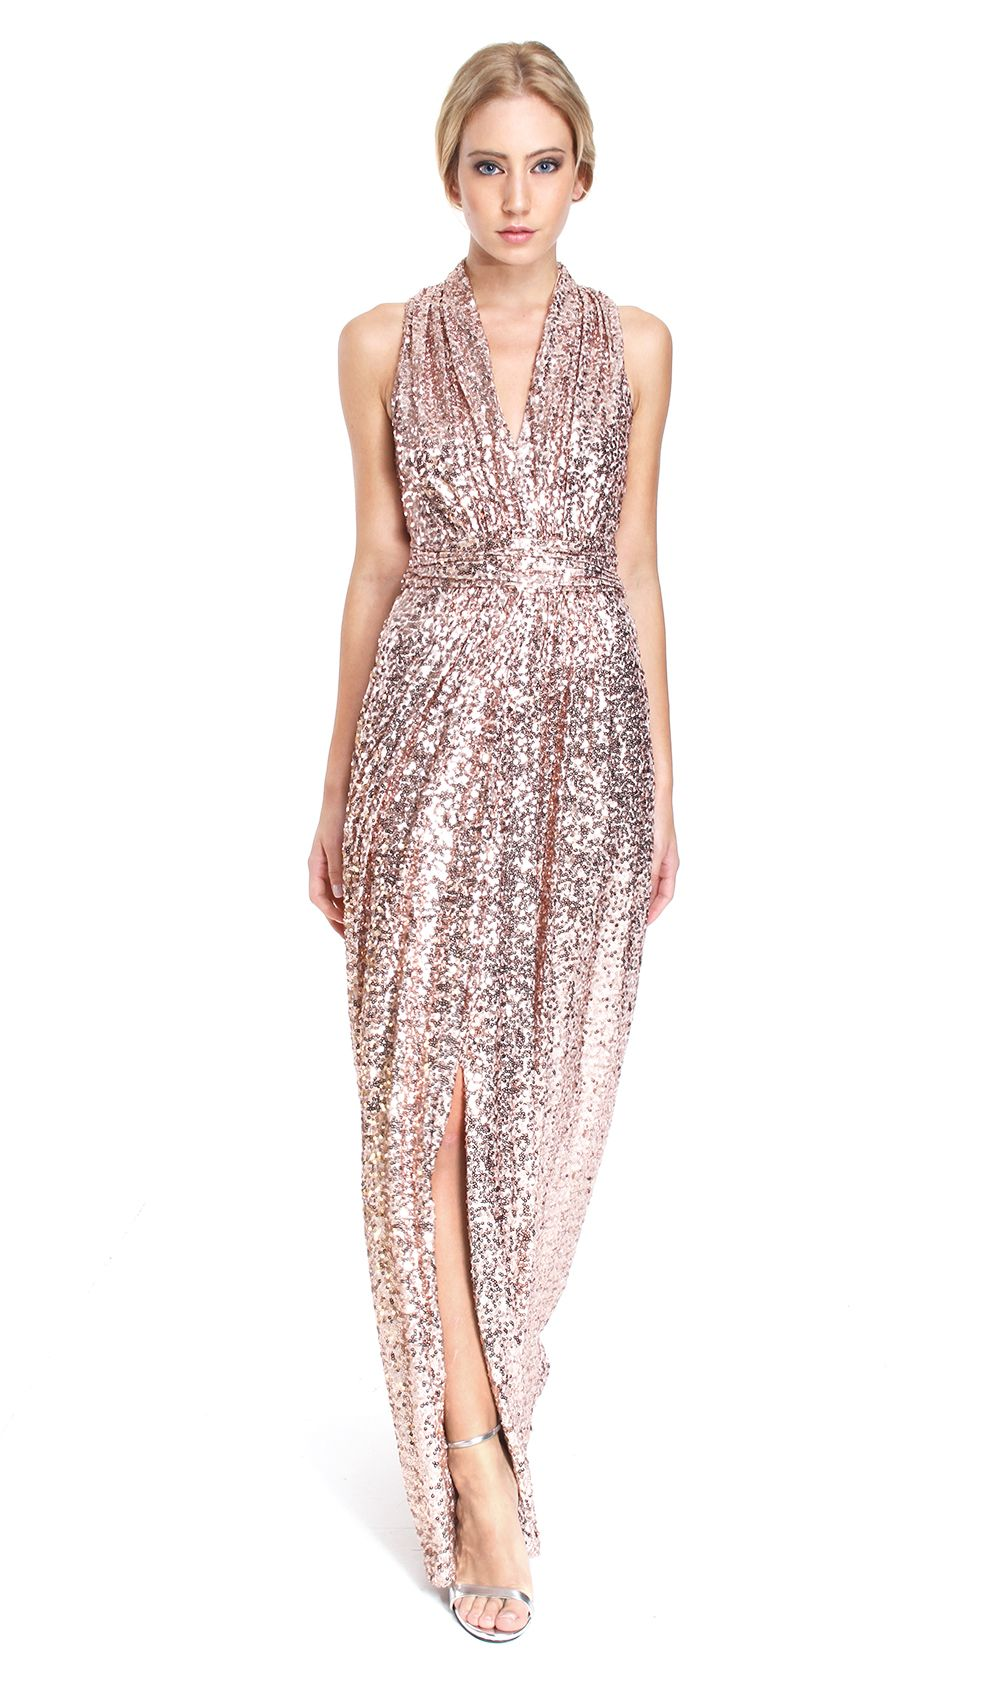 f9f8cd1ef96f Pink Sequined Gown Hire - Badgley Mischka - Front | Pink closet ...